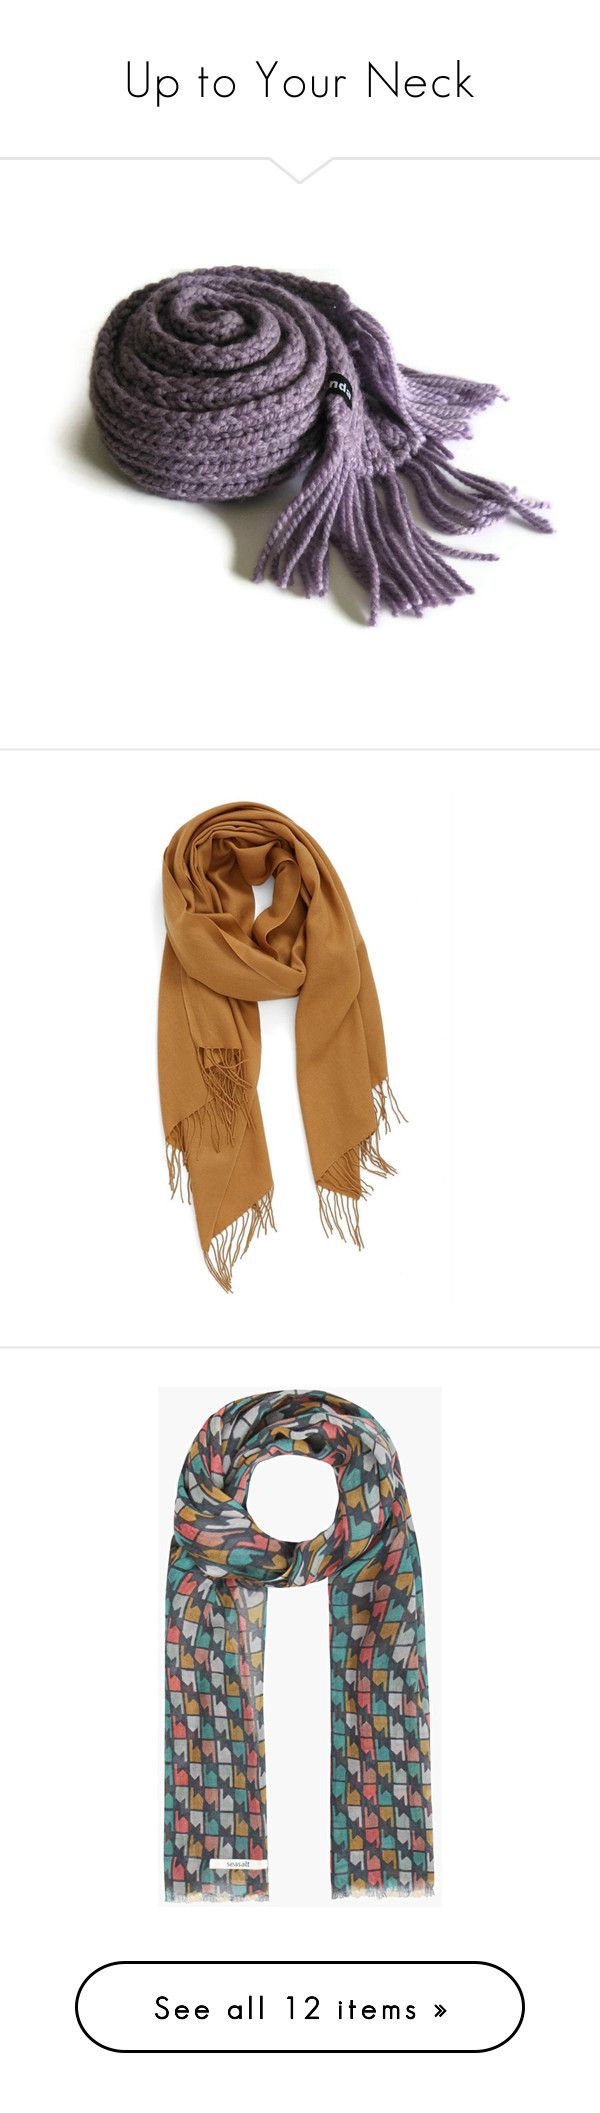 """""""Up to Your Neck"""" by miss-a-belle ❤ liked on Polyvore featuring accessories, scarves, woolen scarves, long scarves, hand knitted shawl, cowl scarves, chunky knit scarves, brown saddle, brown scarves and brown shawl"""